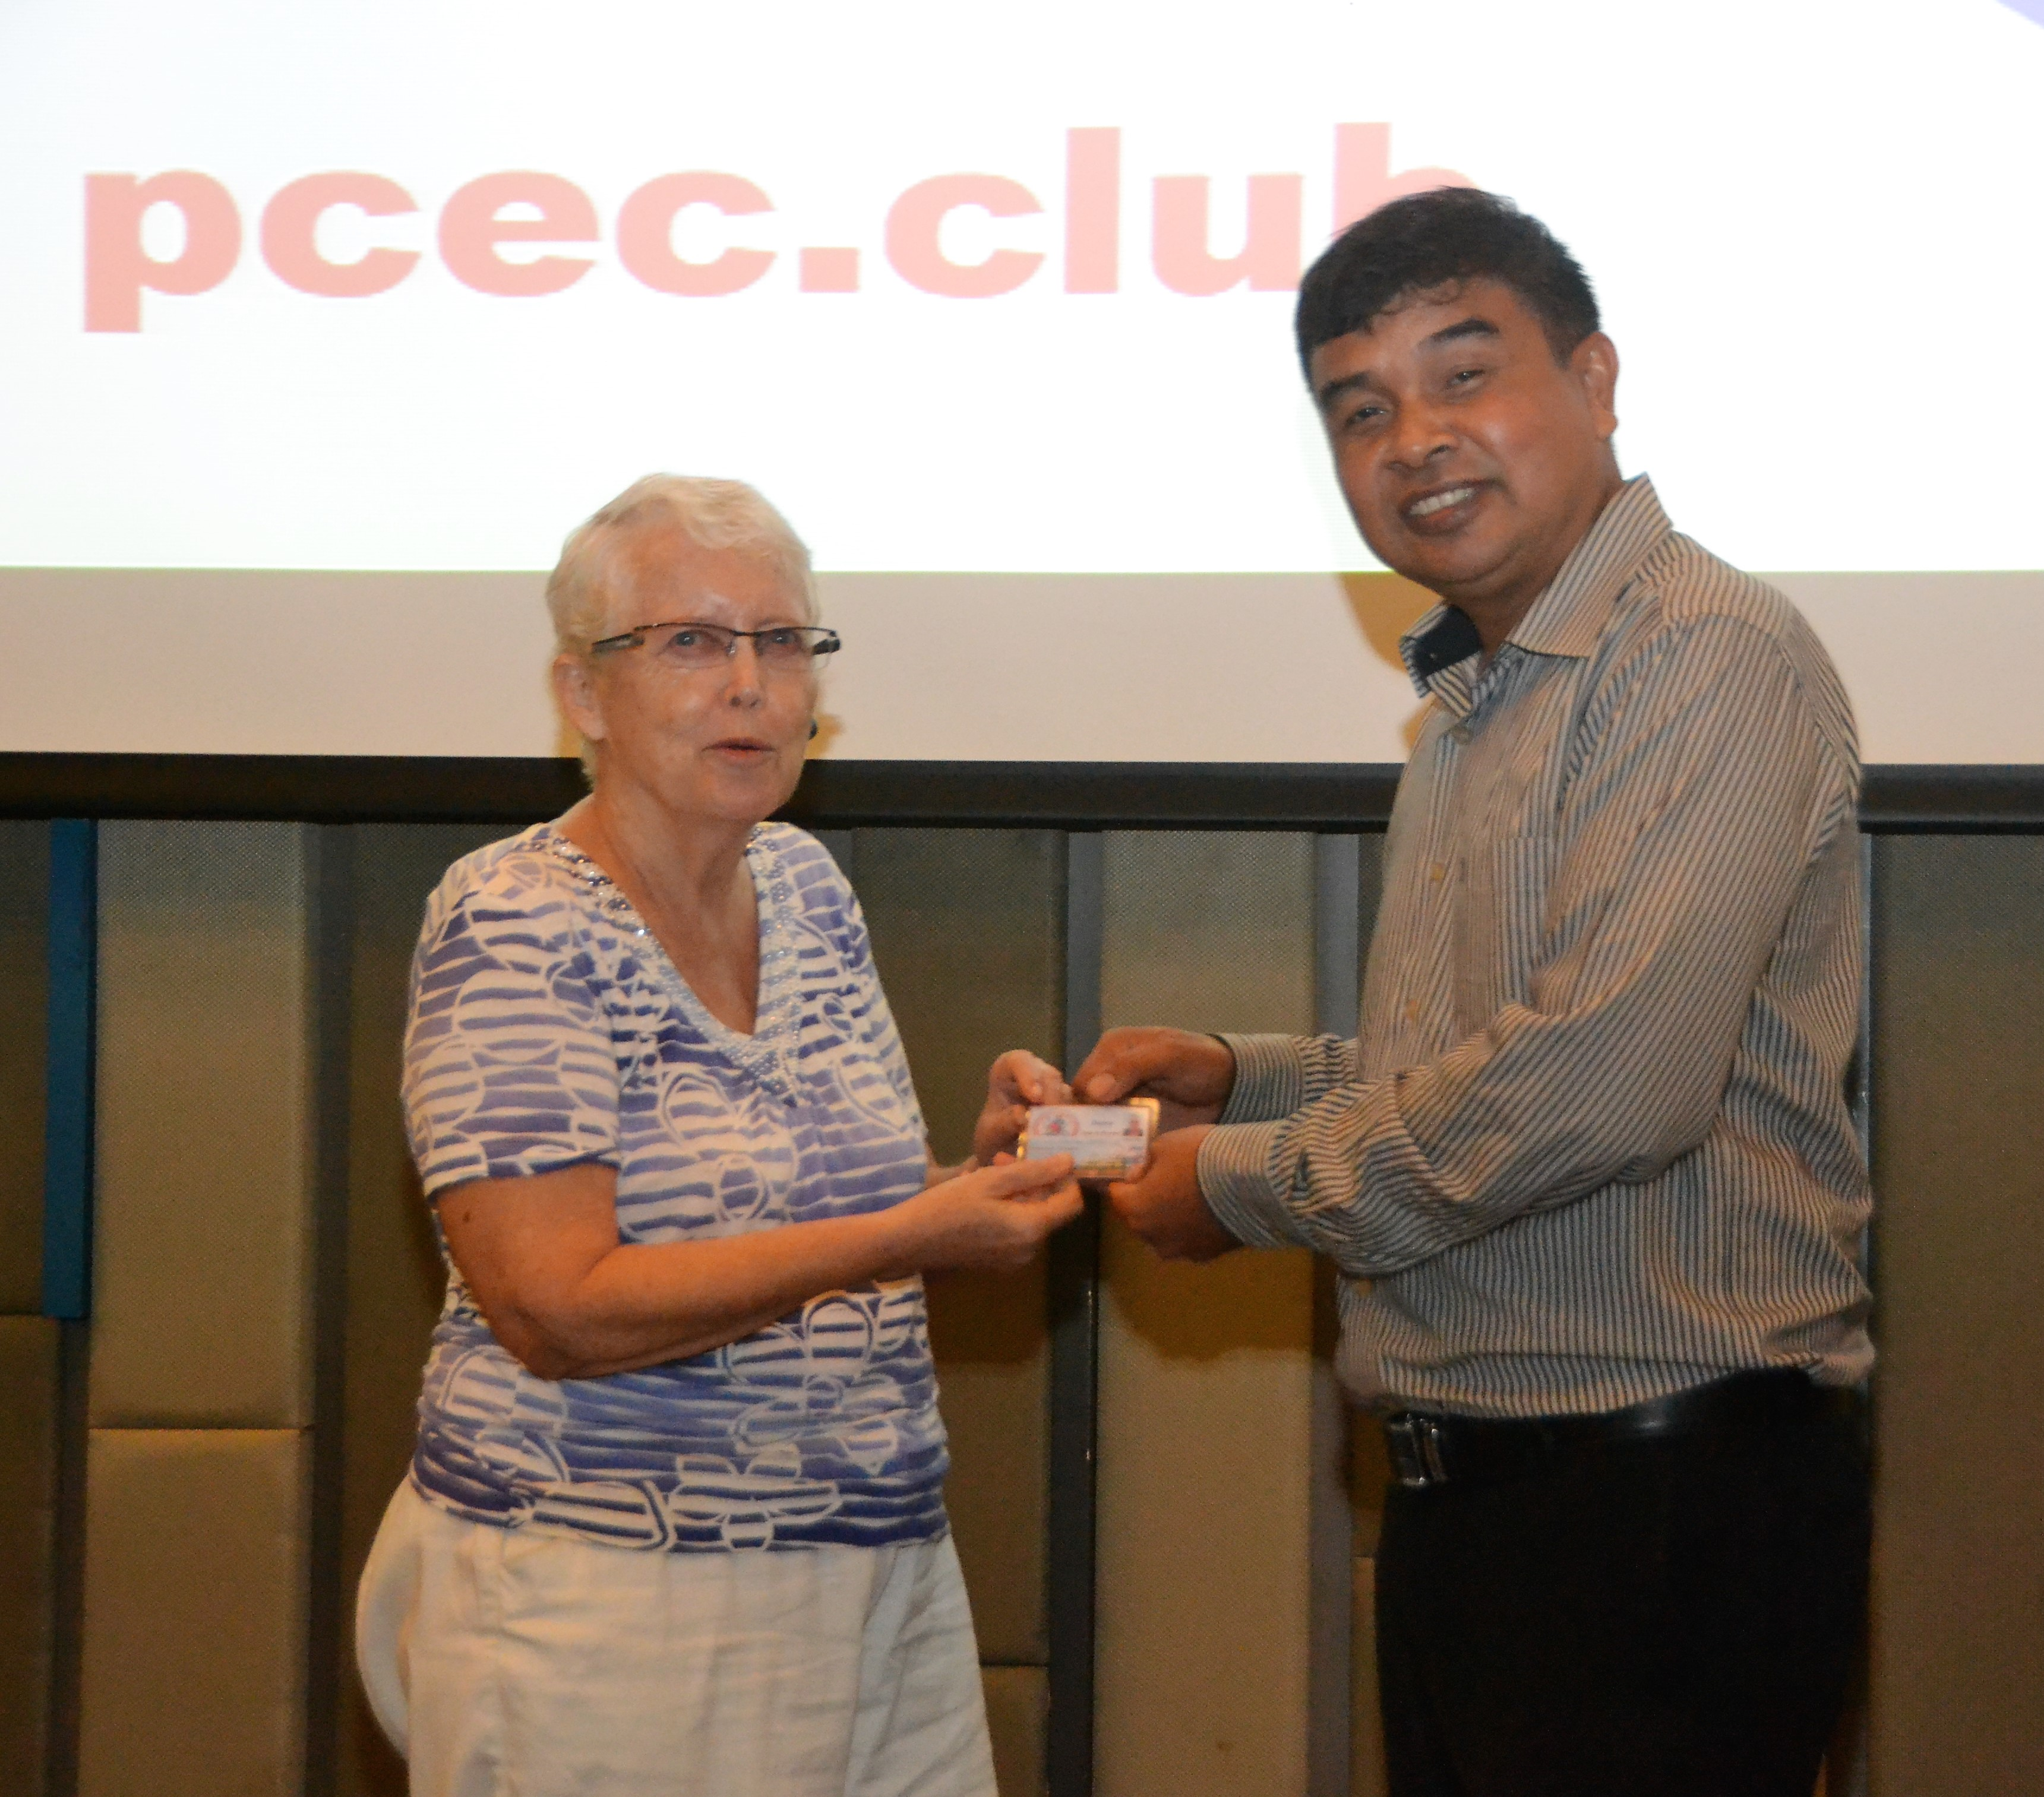 Chatchai Sriphoornthe, Deputy Chief for Banglamung District, presents Club member Donna Westendorf with her Commemoration Card from the District.